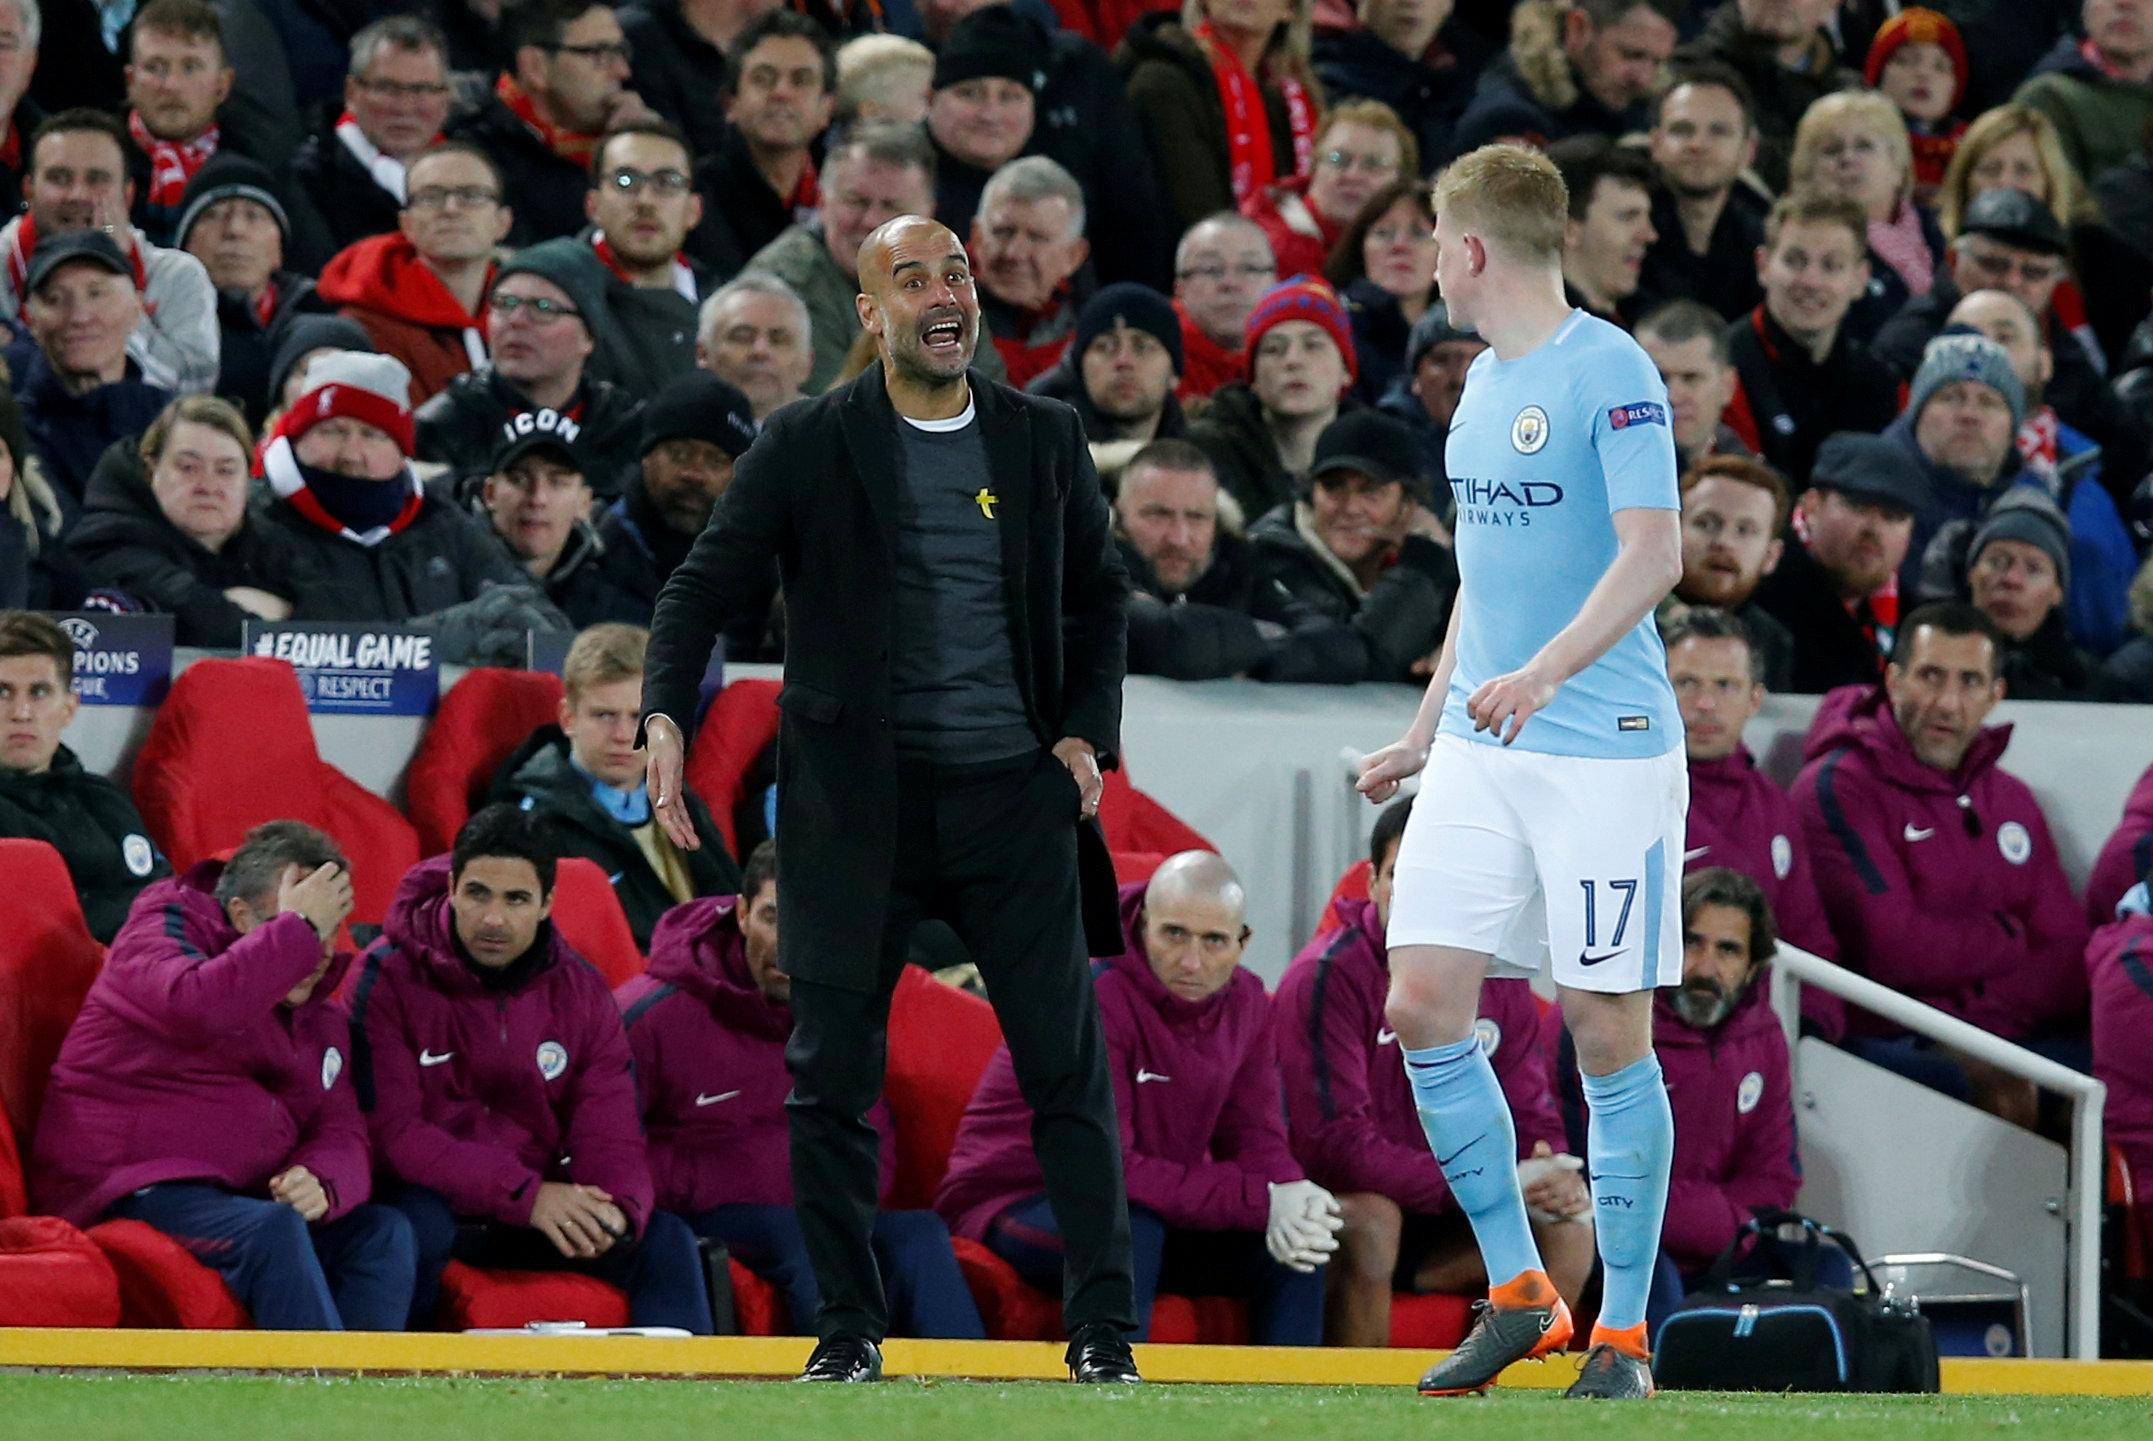 Pep Guardiola may rest players like Kevin De Bruyne for the game